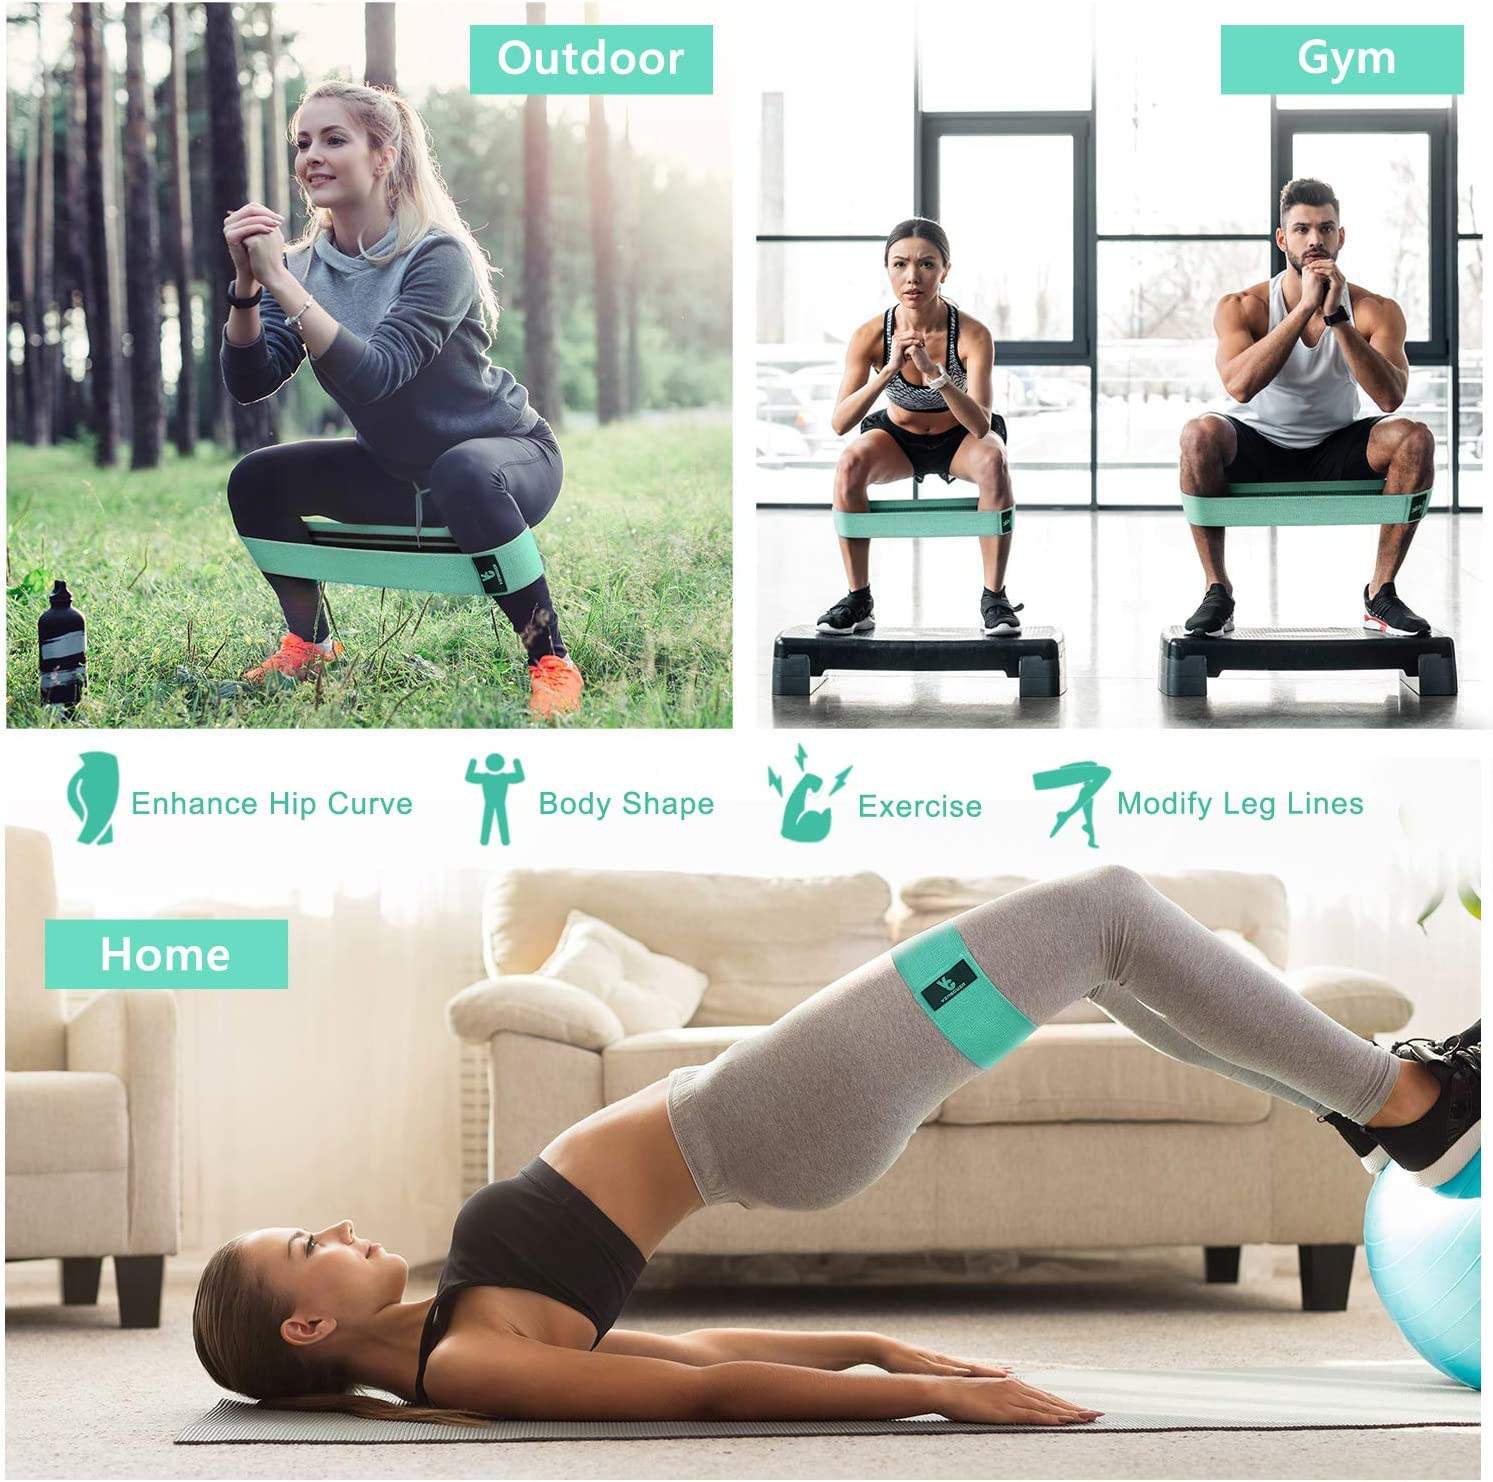 Exercise Bands for Women Hip Glutes Circle Workout Bands Wide Fitness Bands for Squats Training Vinsguir Fabric Resistance Bands for Legs and Butt Legs and Thigh Shaping